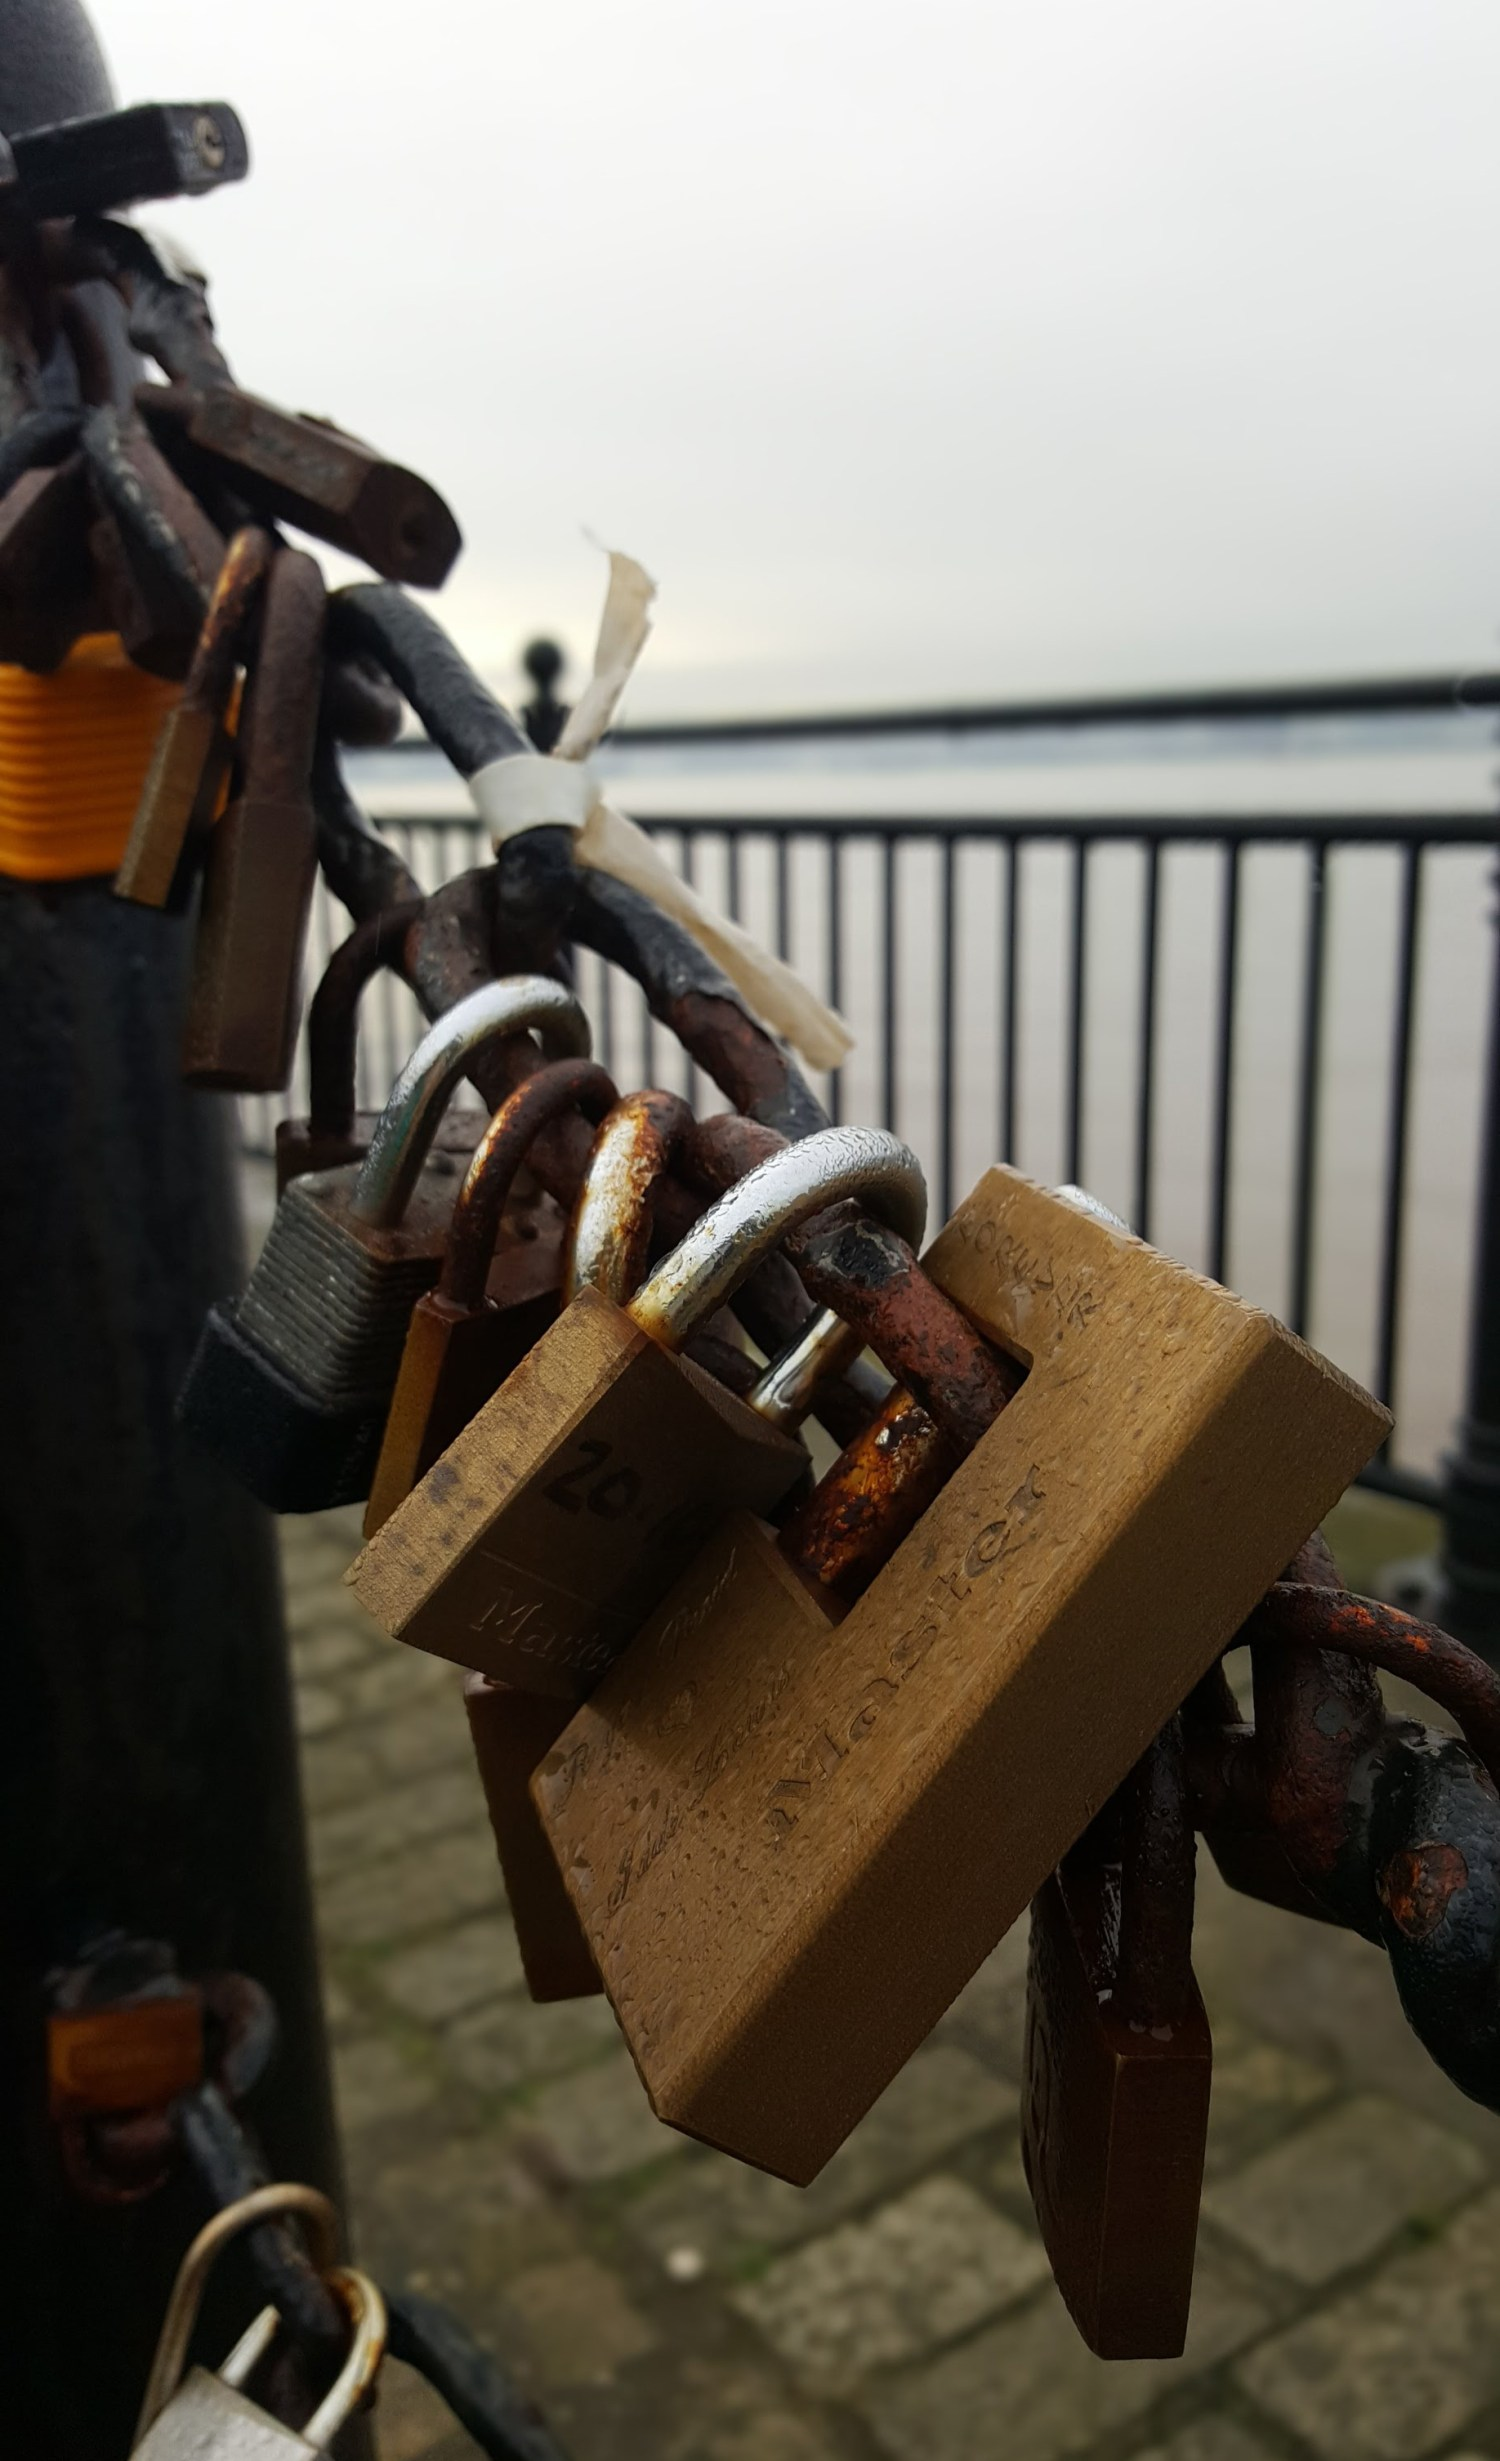 padlocks by the side of the Mersey in Liverpool